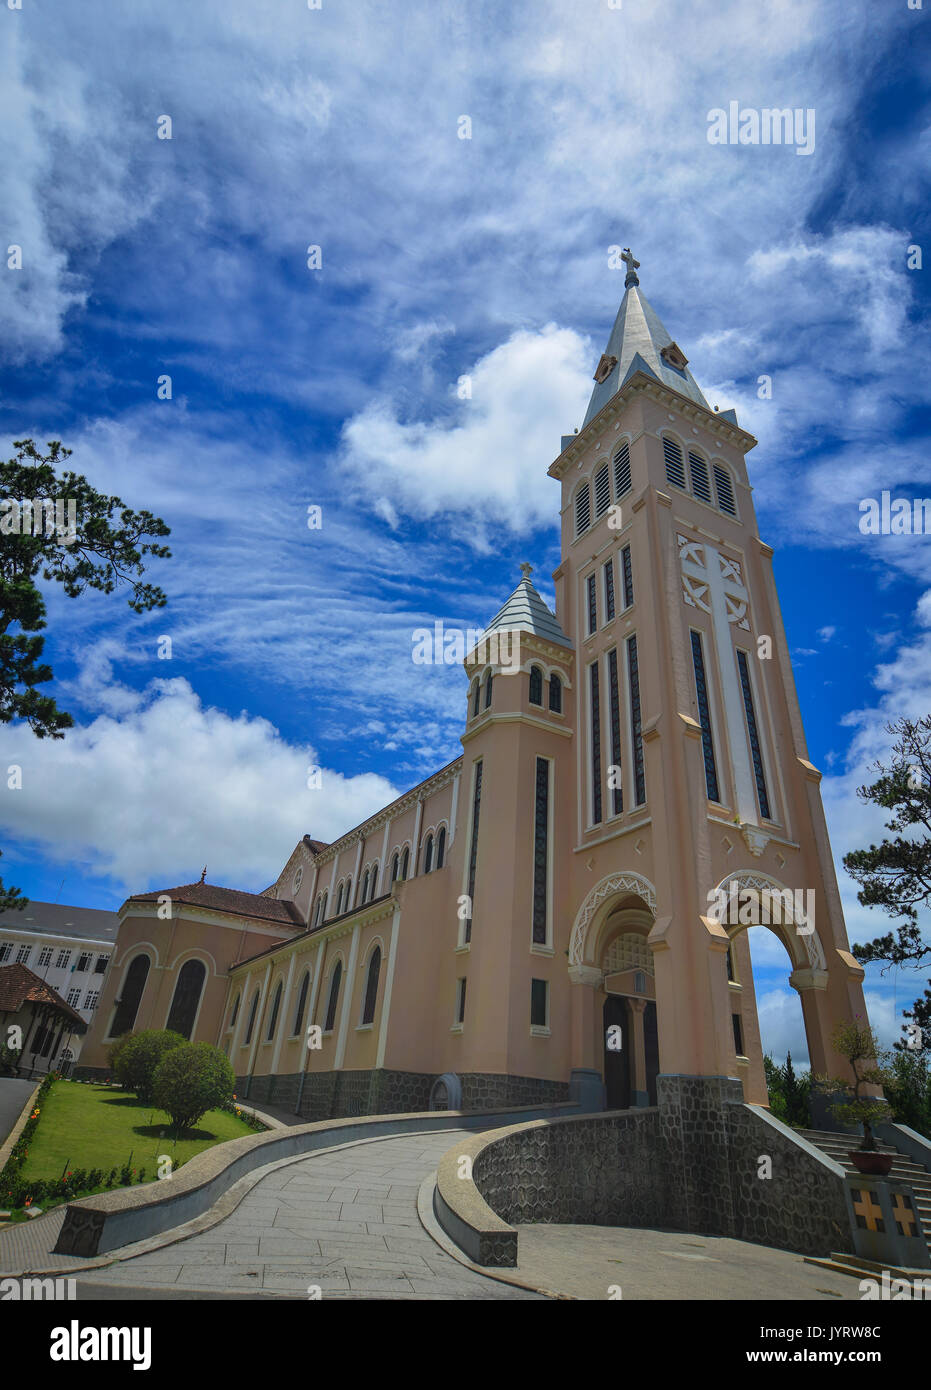 View of Nicholas of Bari Cathedral (Church of Chicken) in Dalat Vietnam. It is a Roman Catholic cathedral seat of the diocese of Da Lat suffragan of t - Stock Image